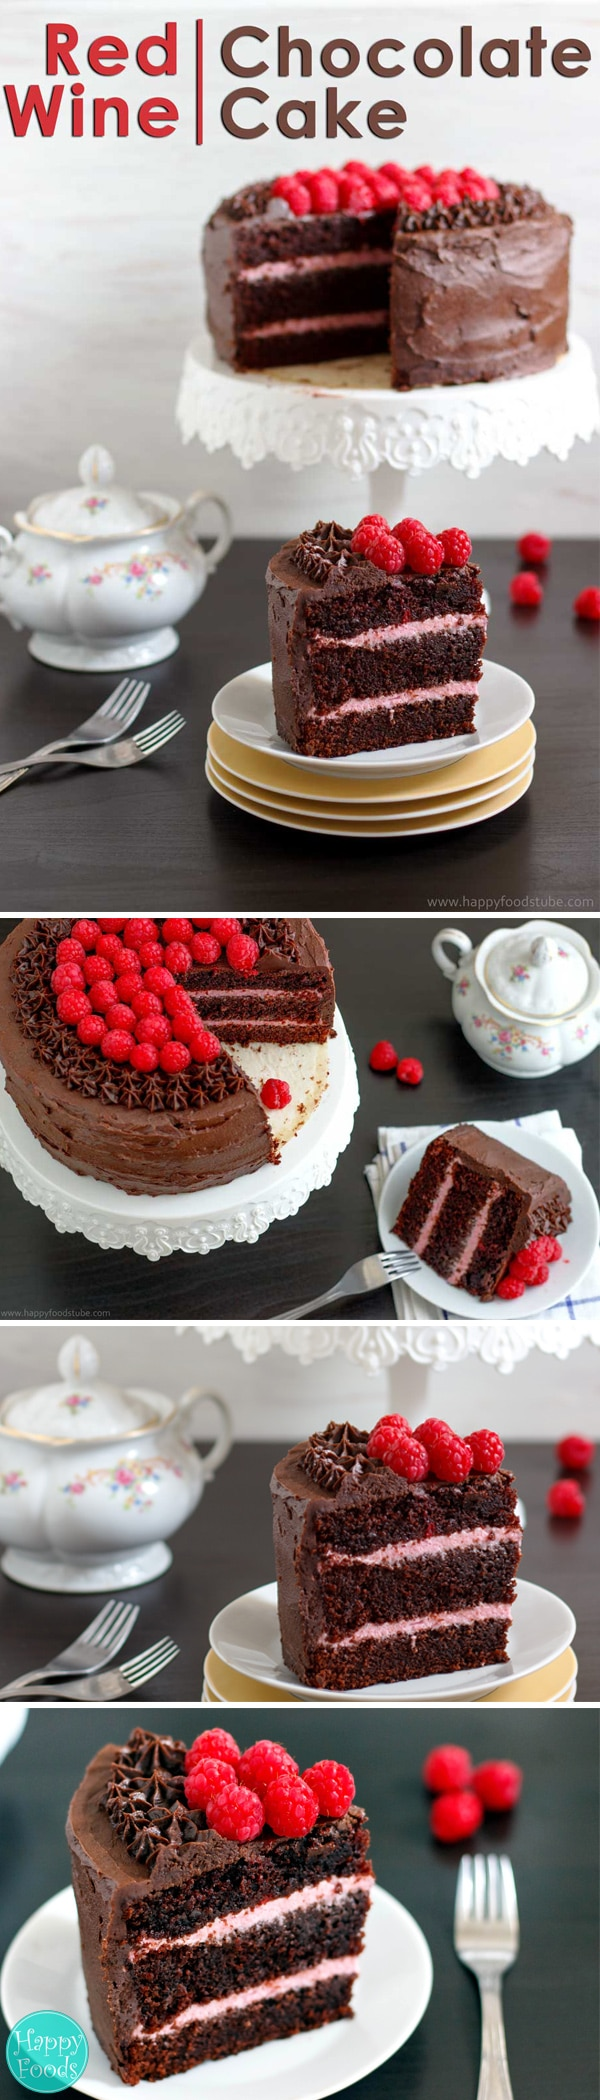 Luxurious Red Wine Chocolate Raspberry Cake is so delicious you won't be able to resist another slice. Best ever birthday cake recipe. Family favorite chocolate #cake recipe